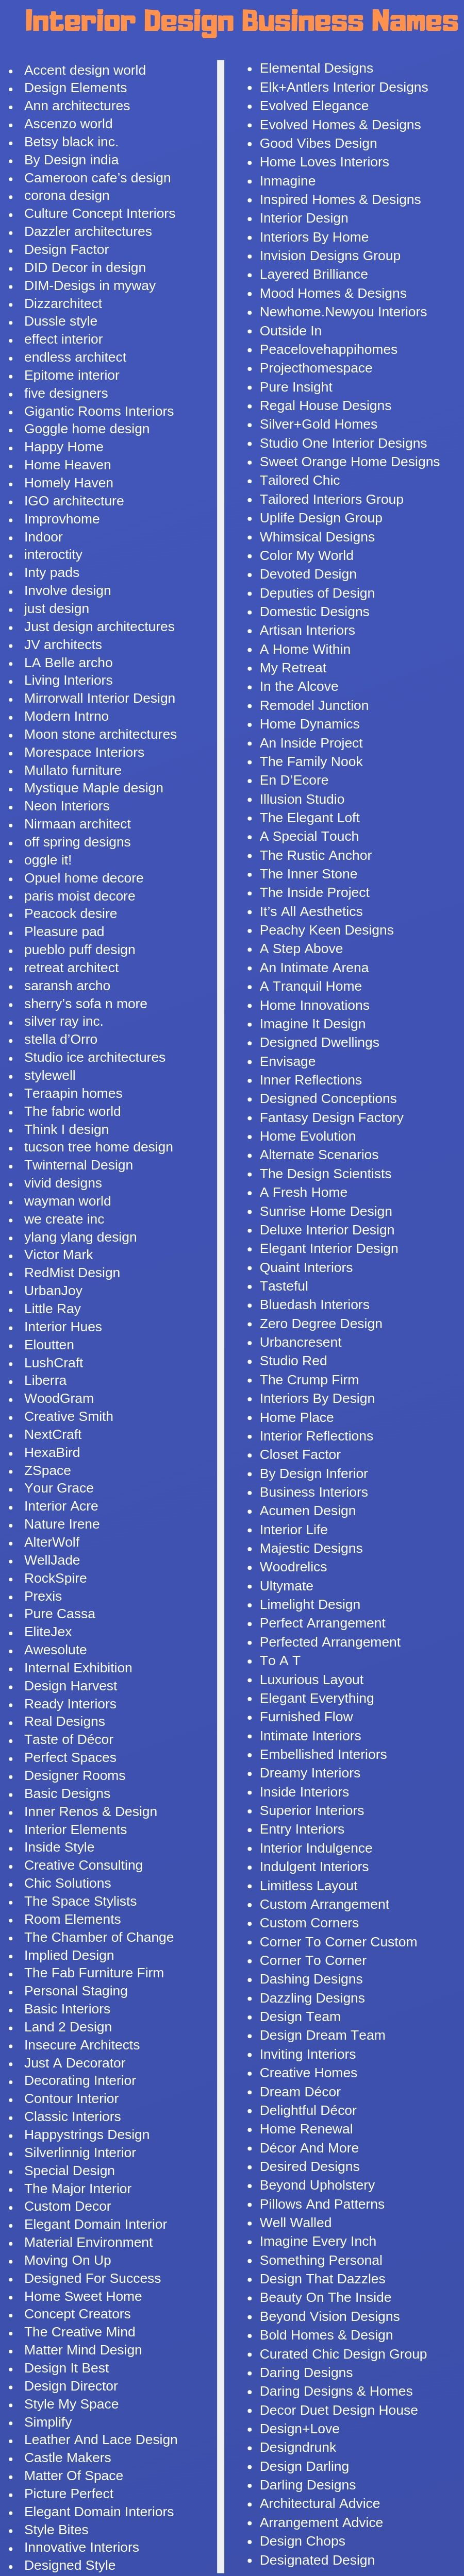 370 Interior Design Business Names Ideas And Suggestions